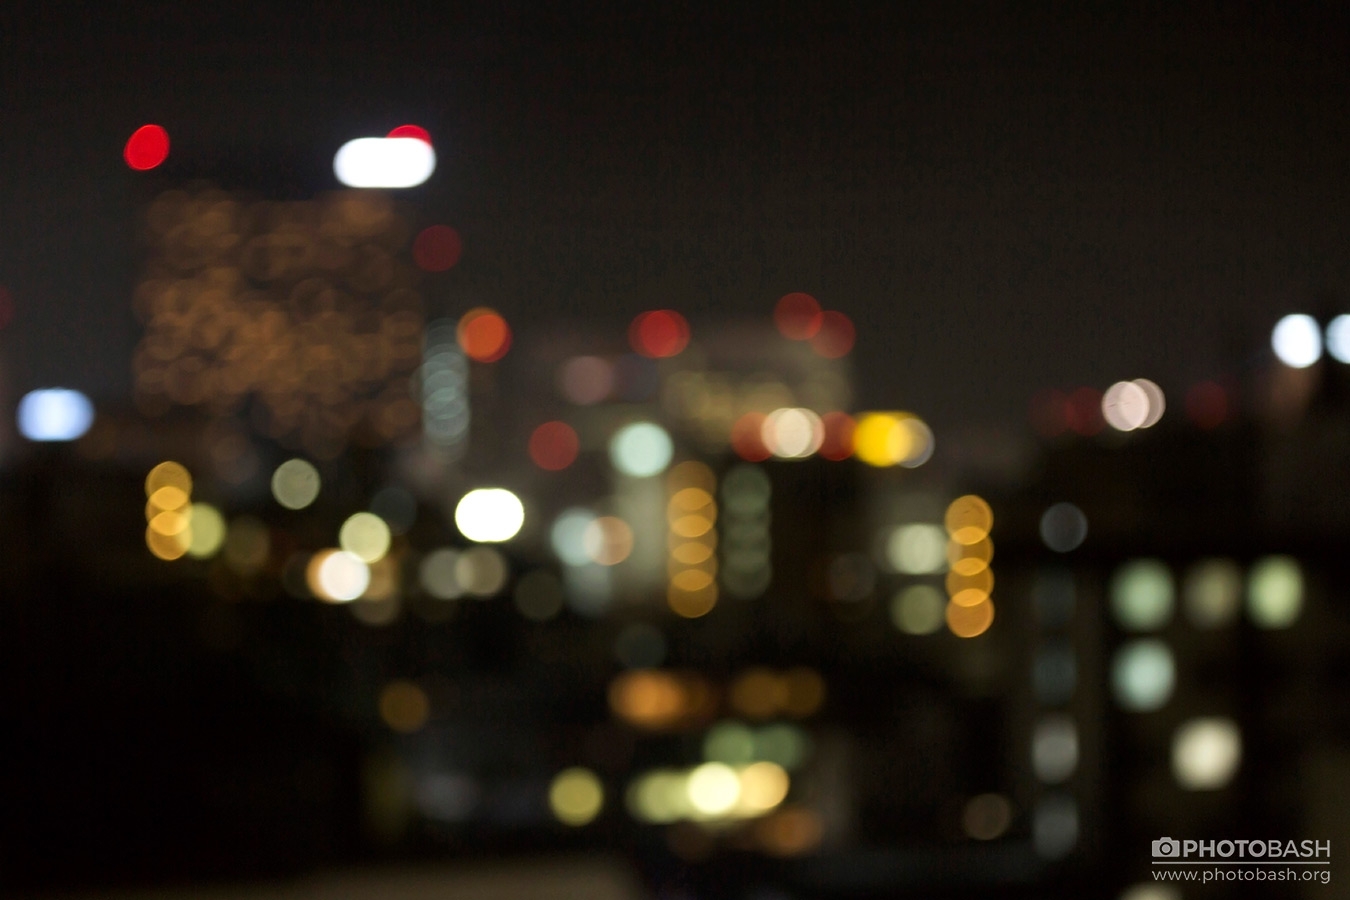 Neon-Bokeh-City-Night-Lights.jpg